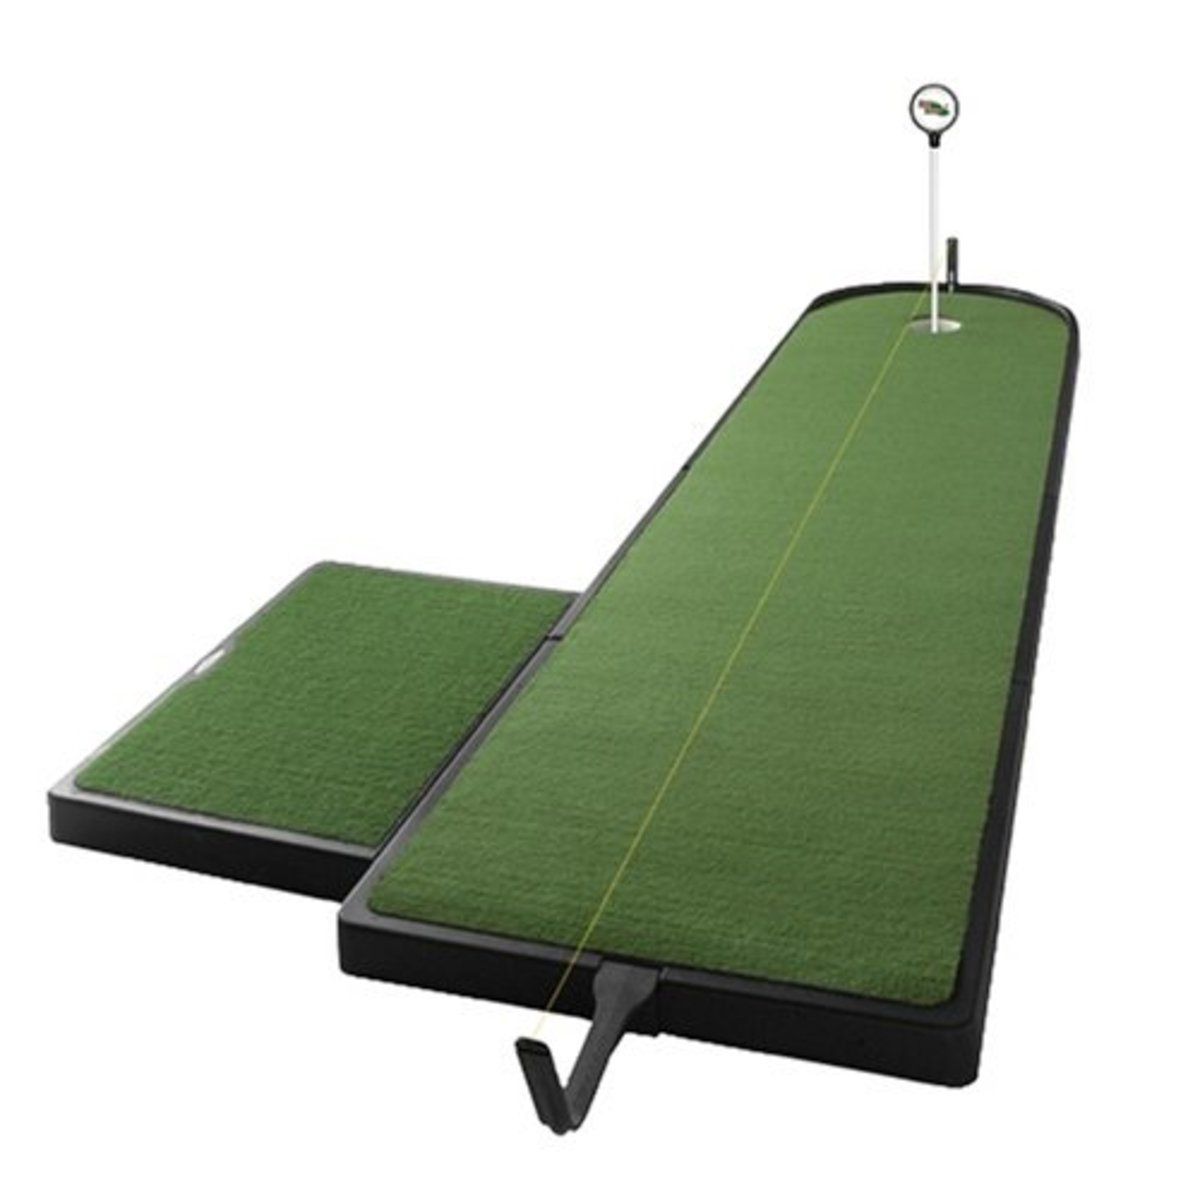 Find The Best Indoor Putting Green For Your Home - Top 4 Review